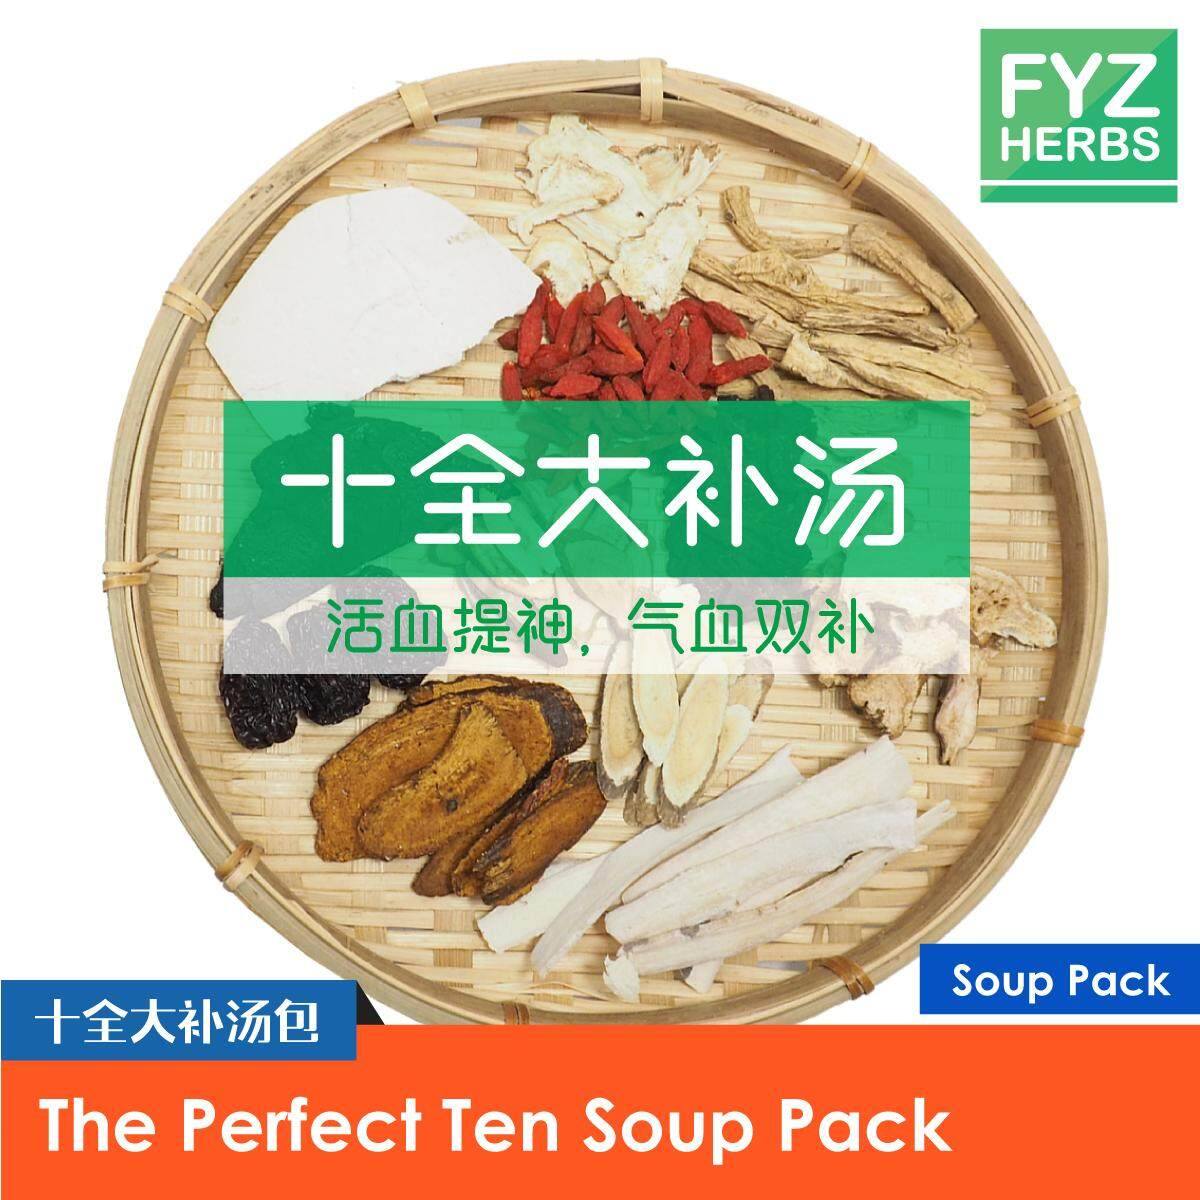 FYZ Herbs The Perfect Ten Soup Pack 十全大补汤